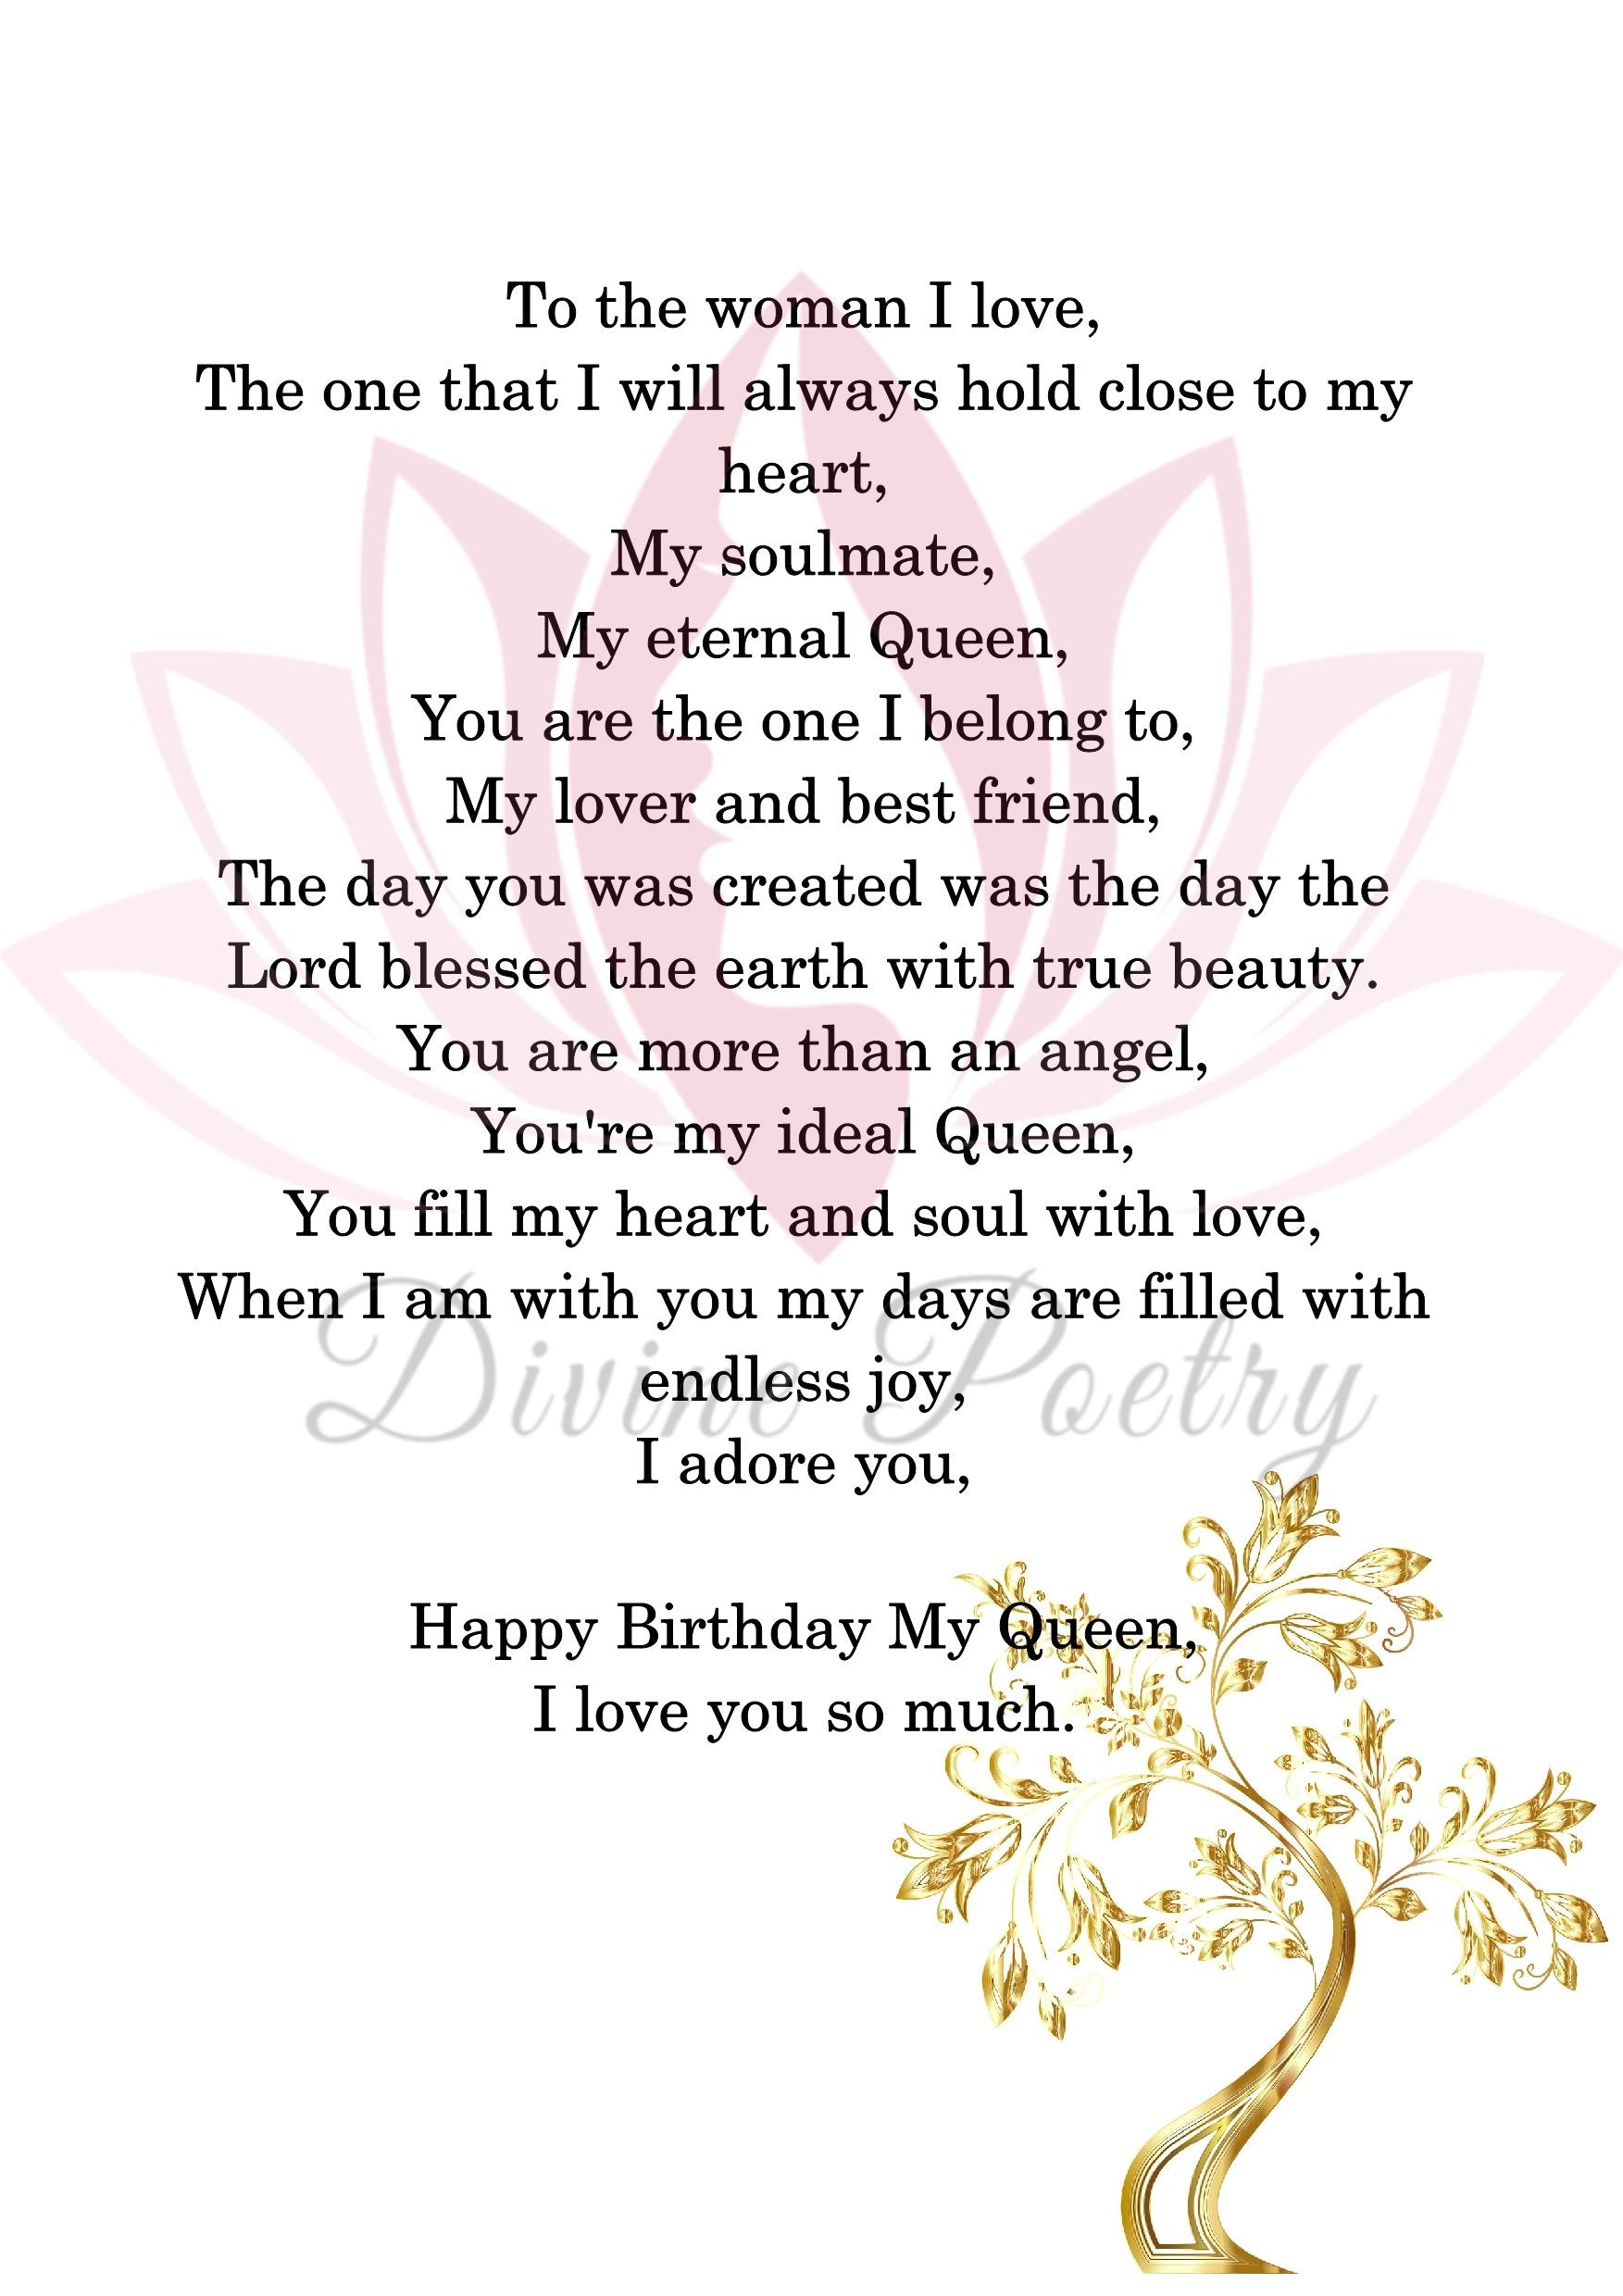 To My Wonderful Woman - Divine Poetry